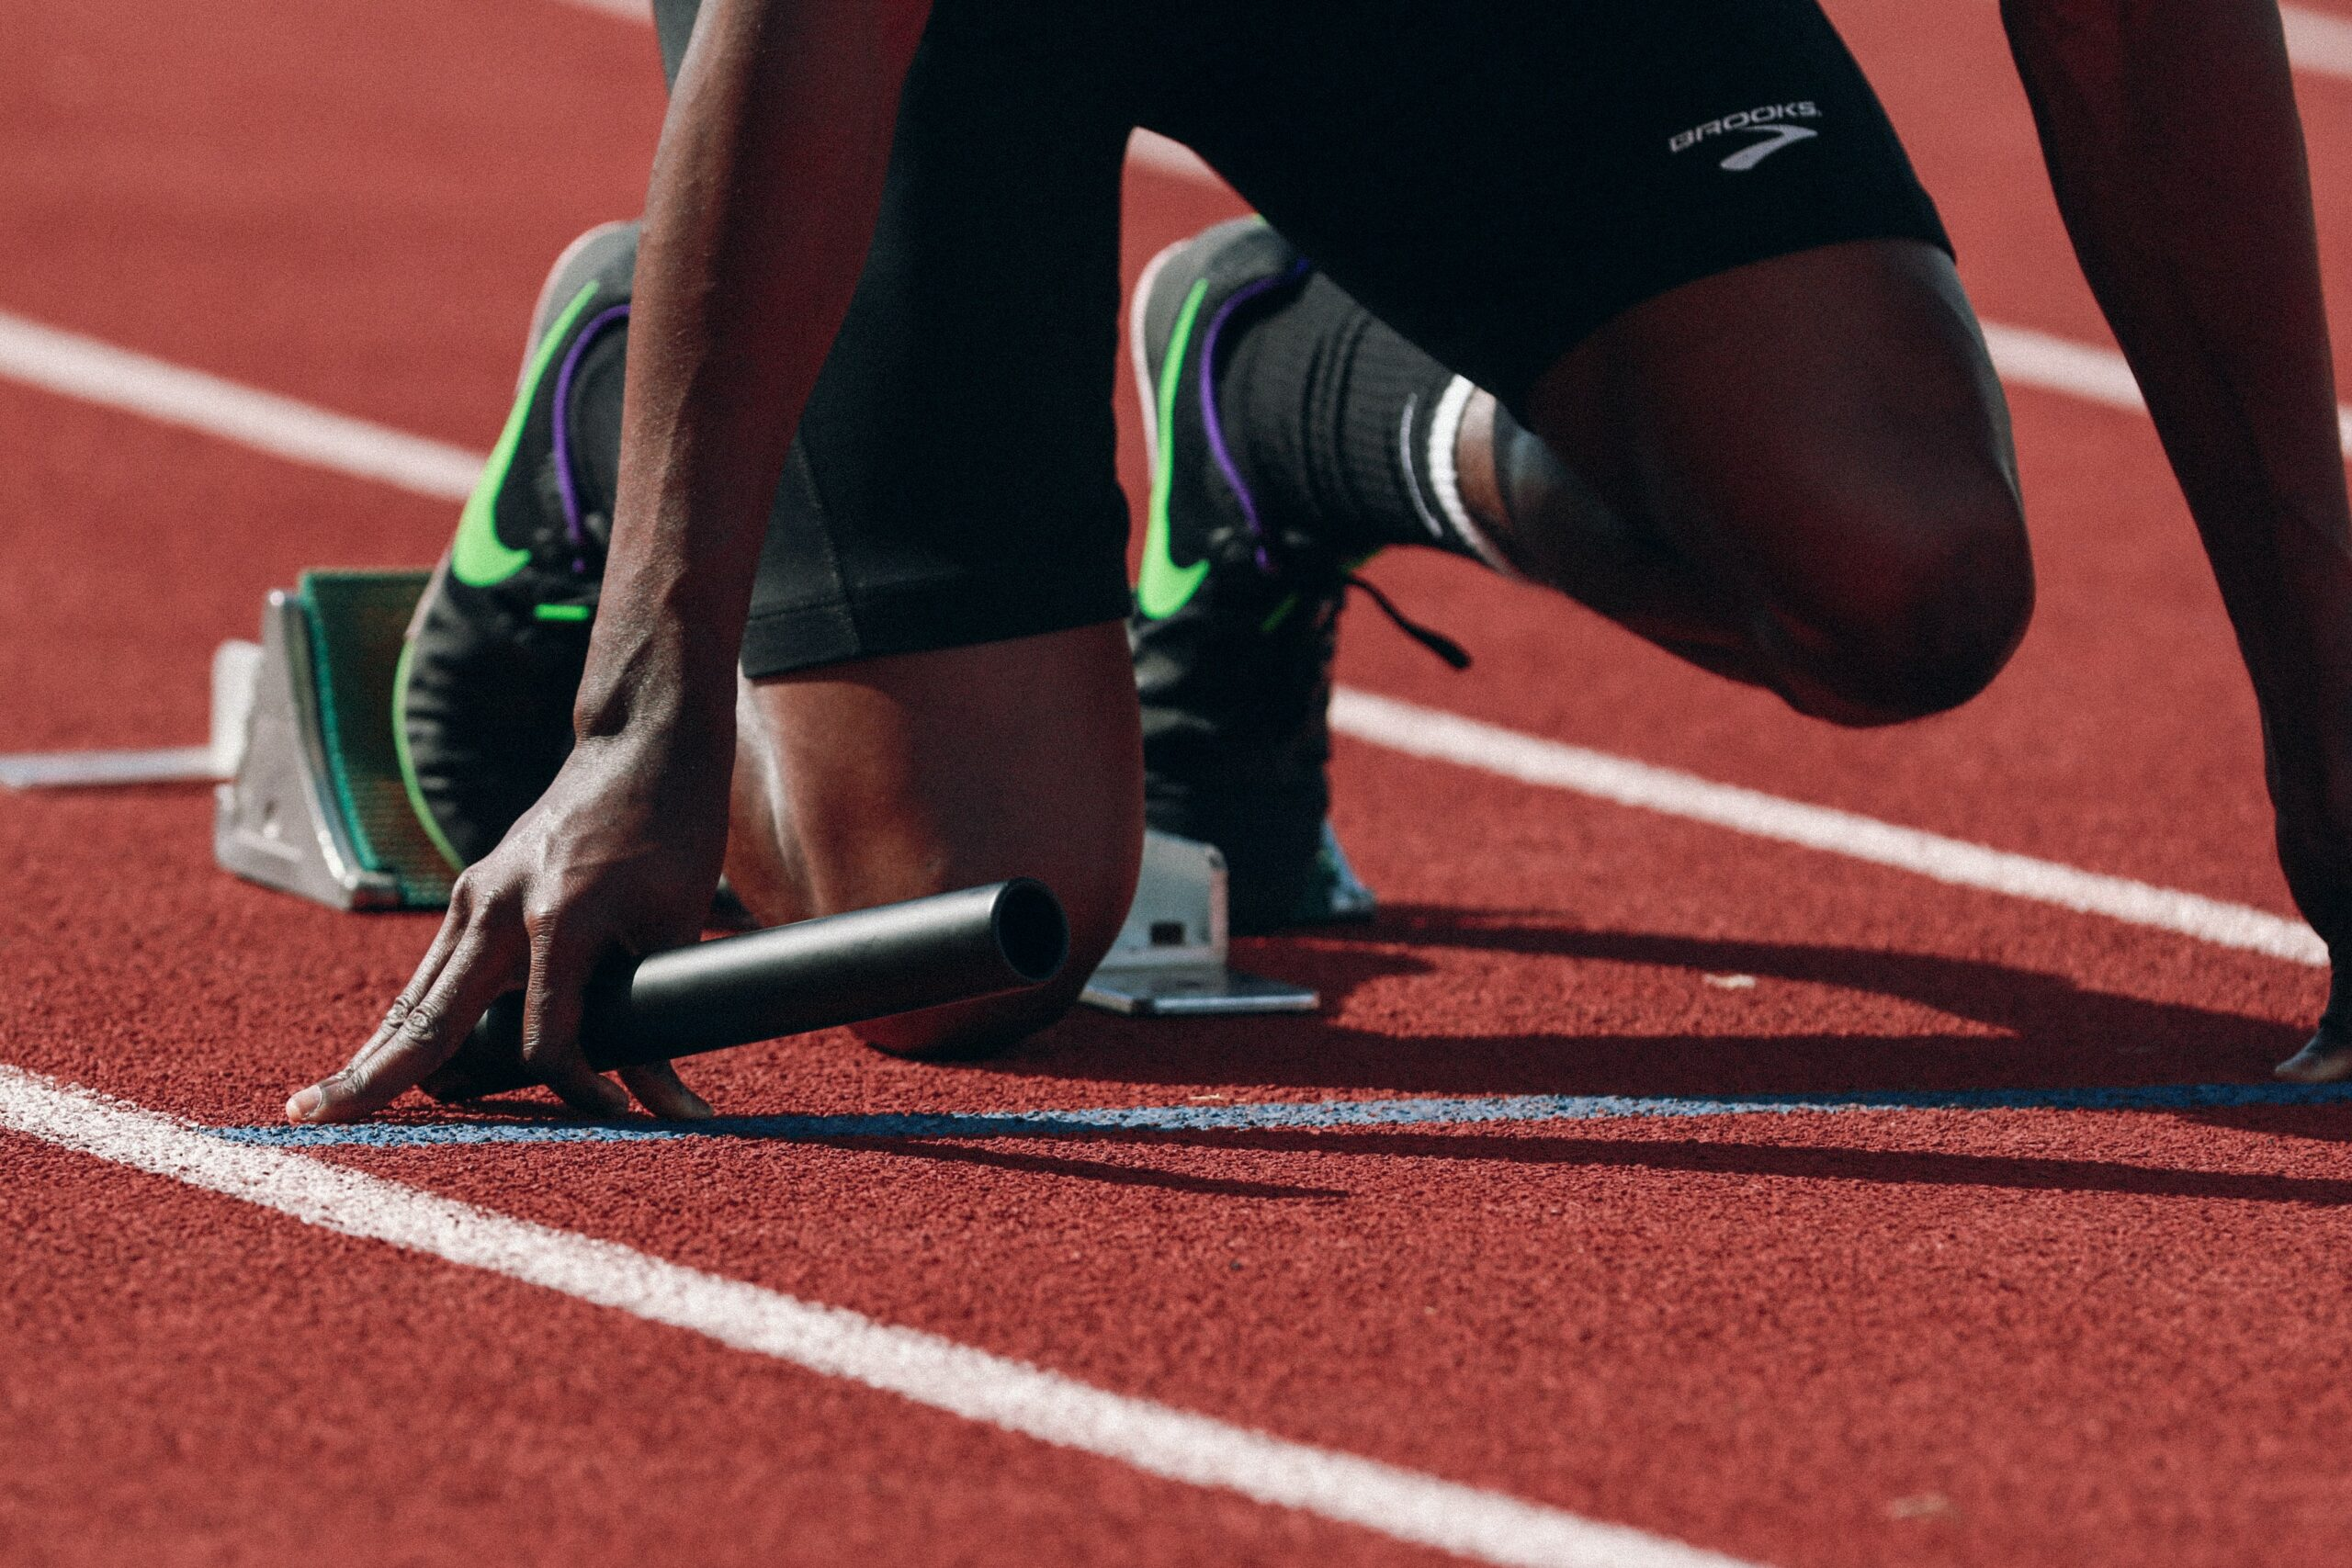 Choose-the-best-running-shoe-for-different-purposes-sprinter